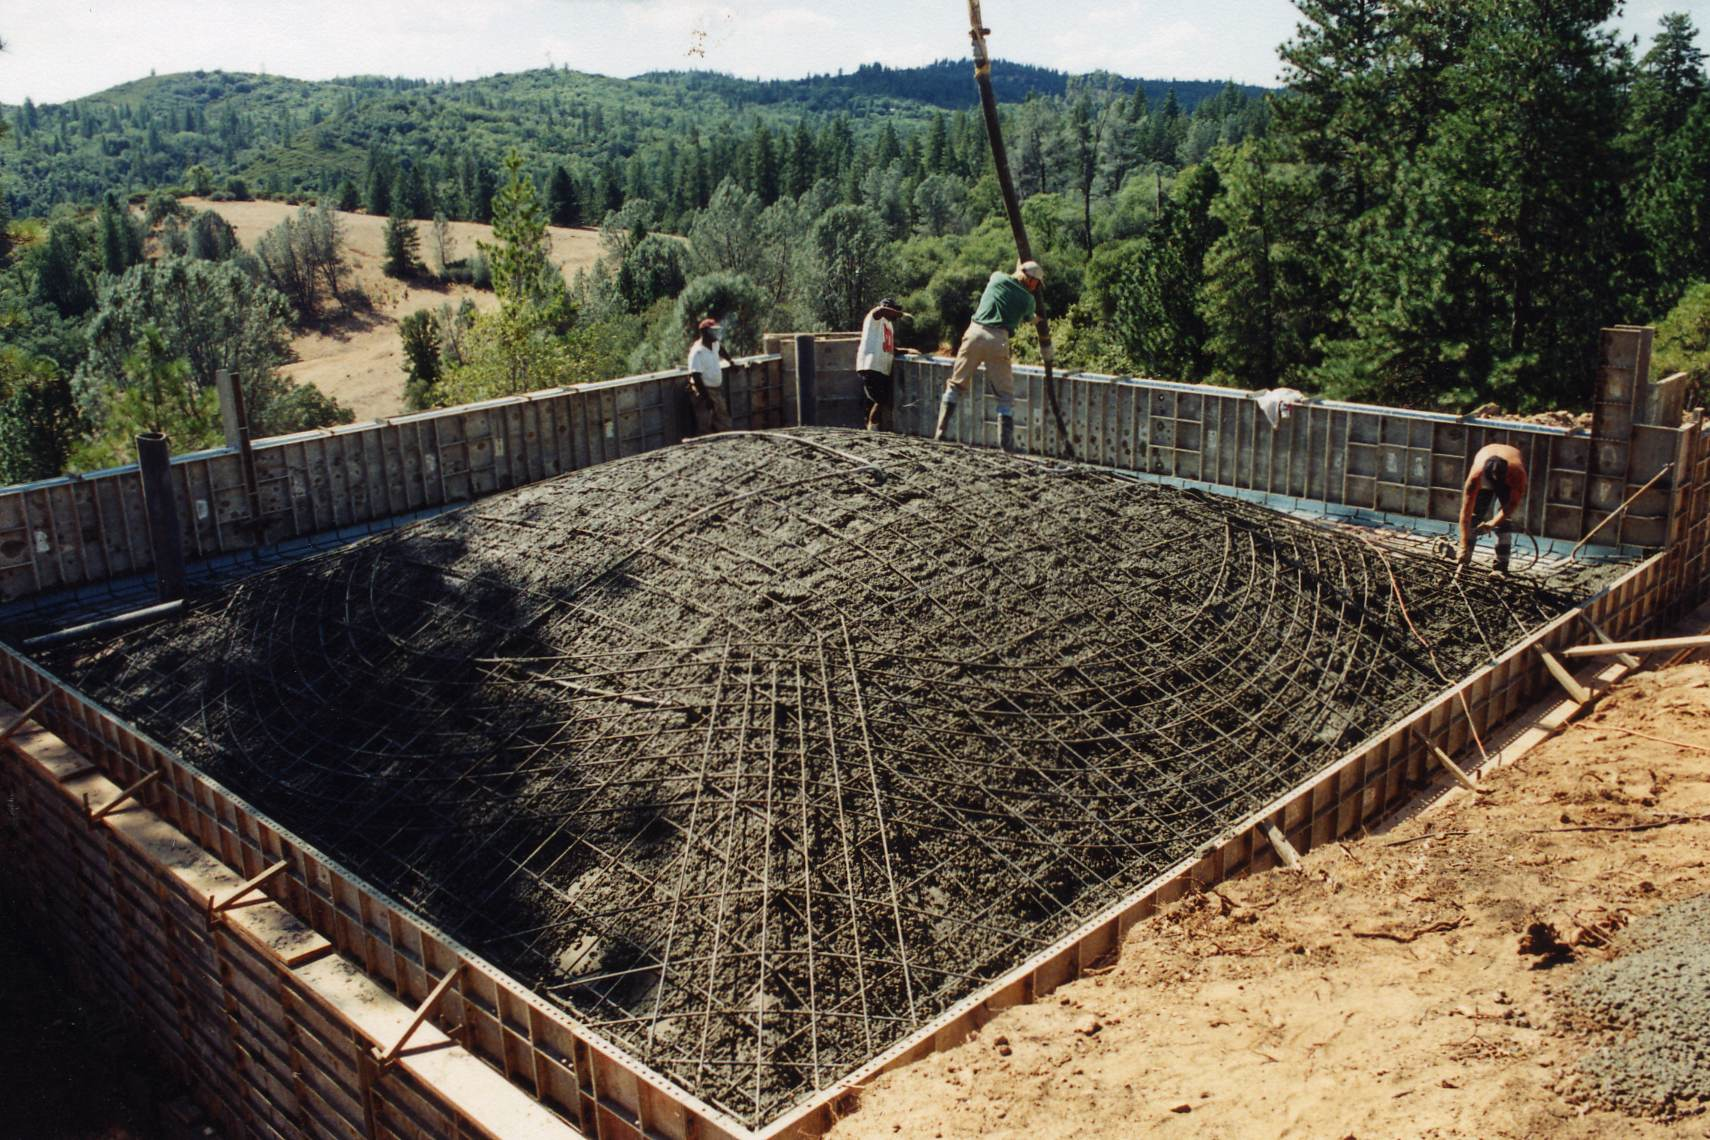 Pouring Concrete Over Rebar